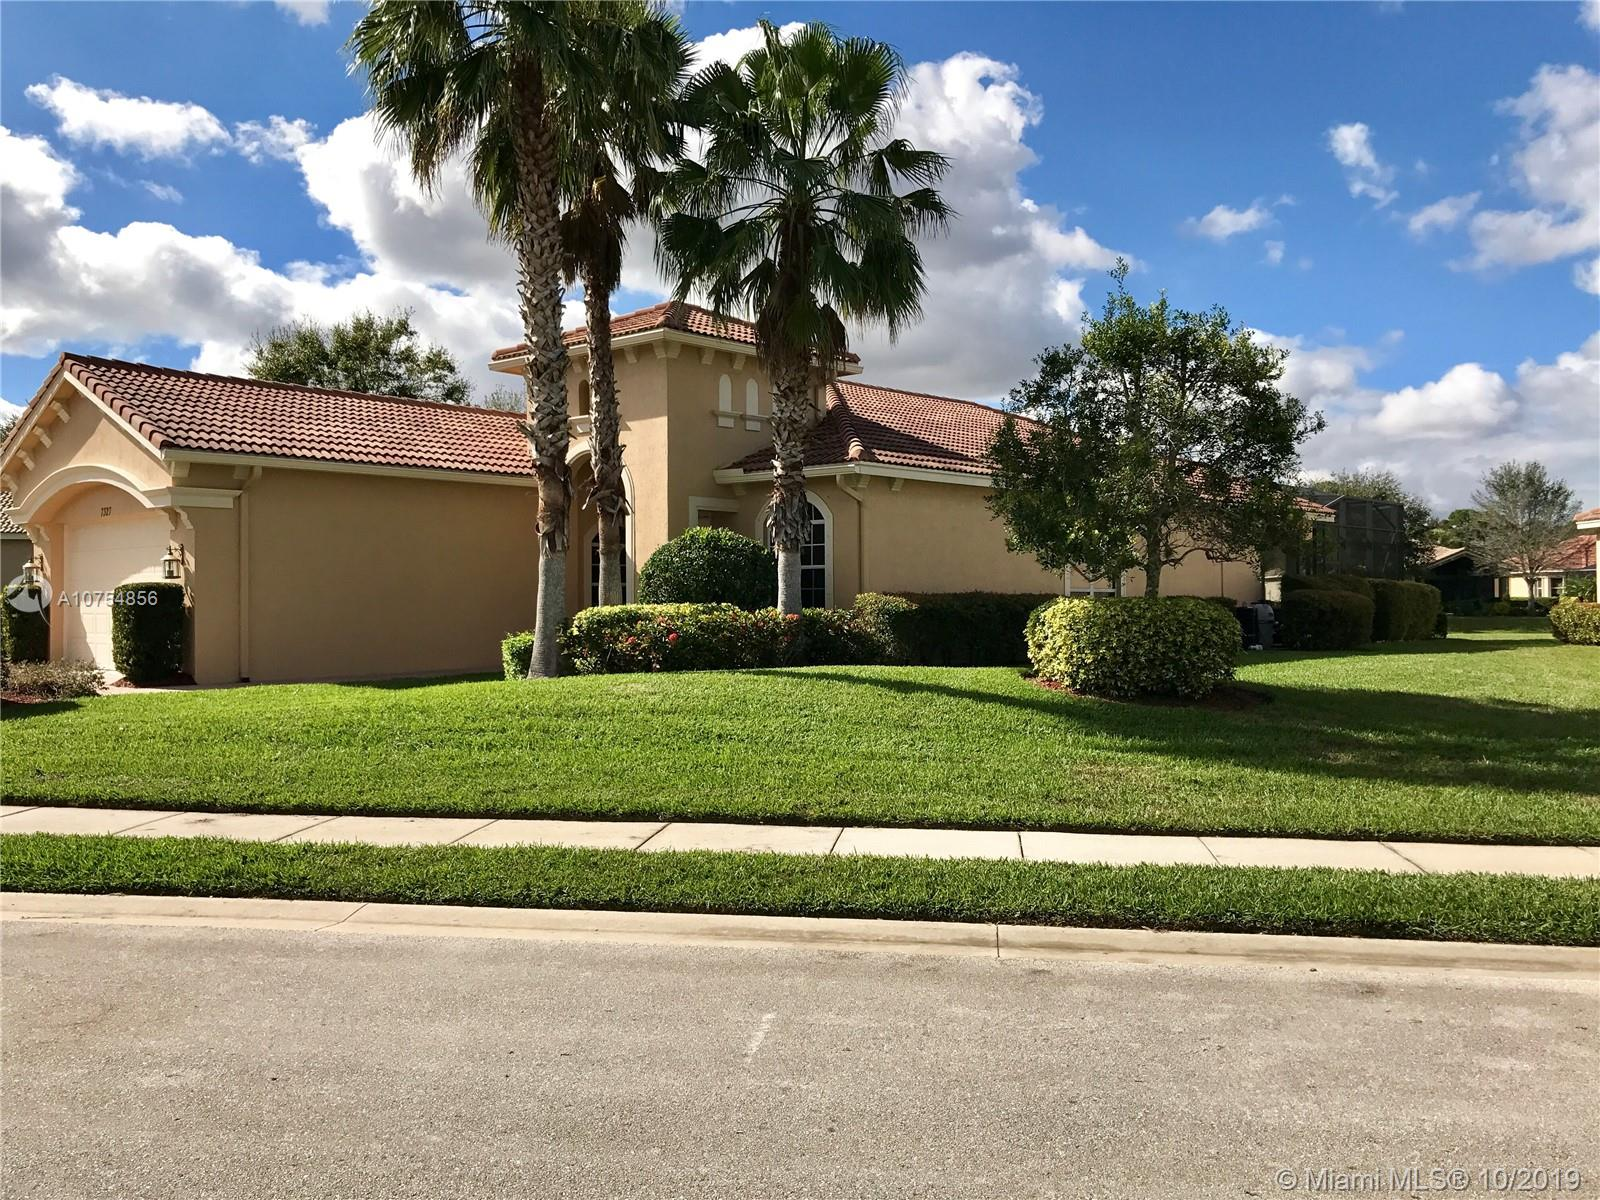 7327 BOB O LINK WAY, Port St. Lucie, FL 34986